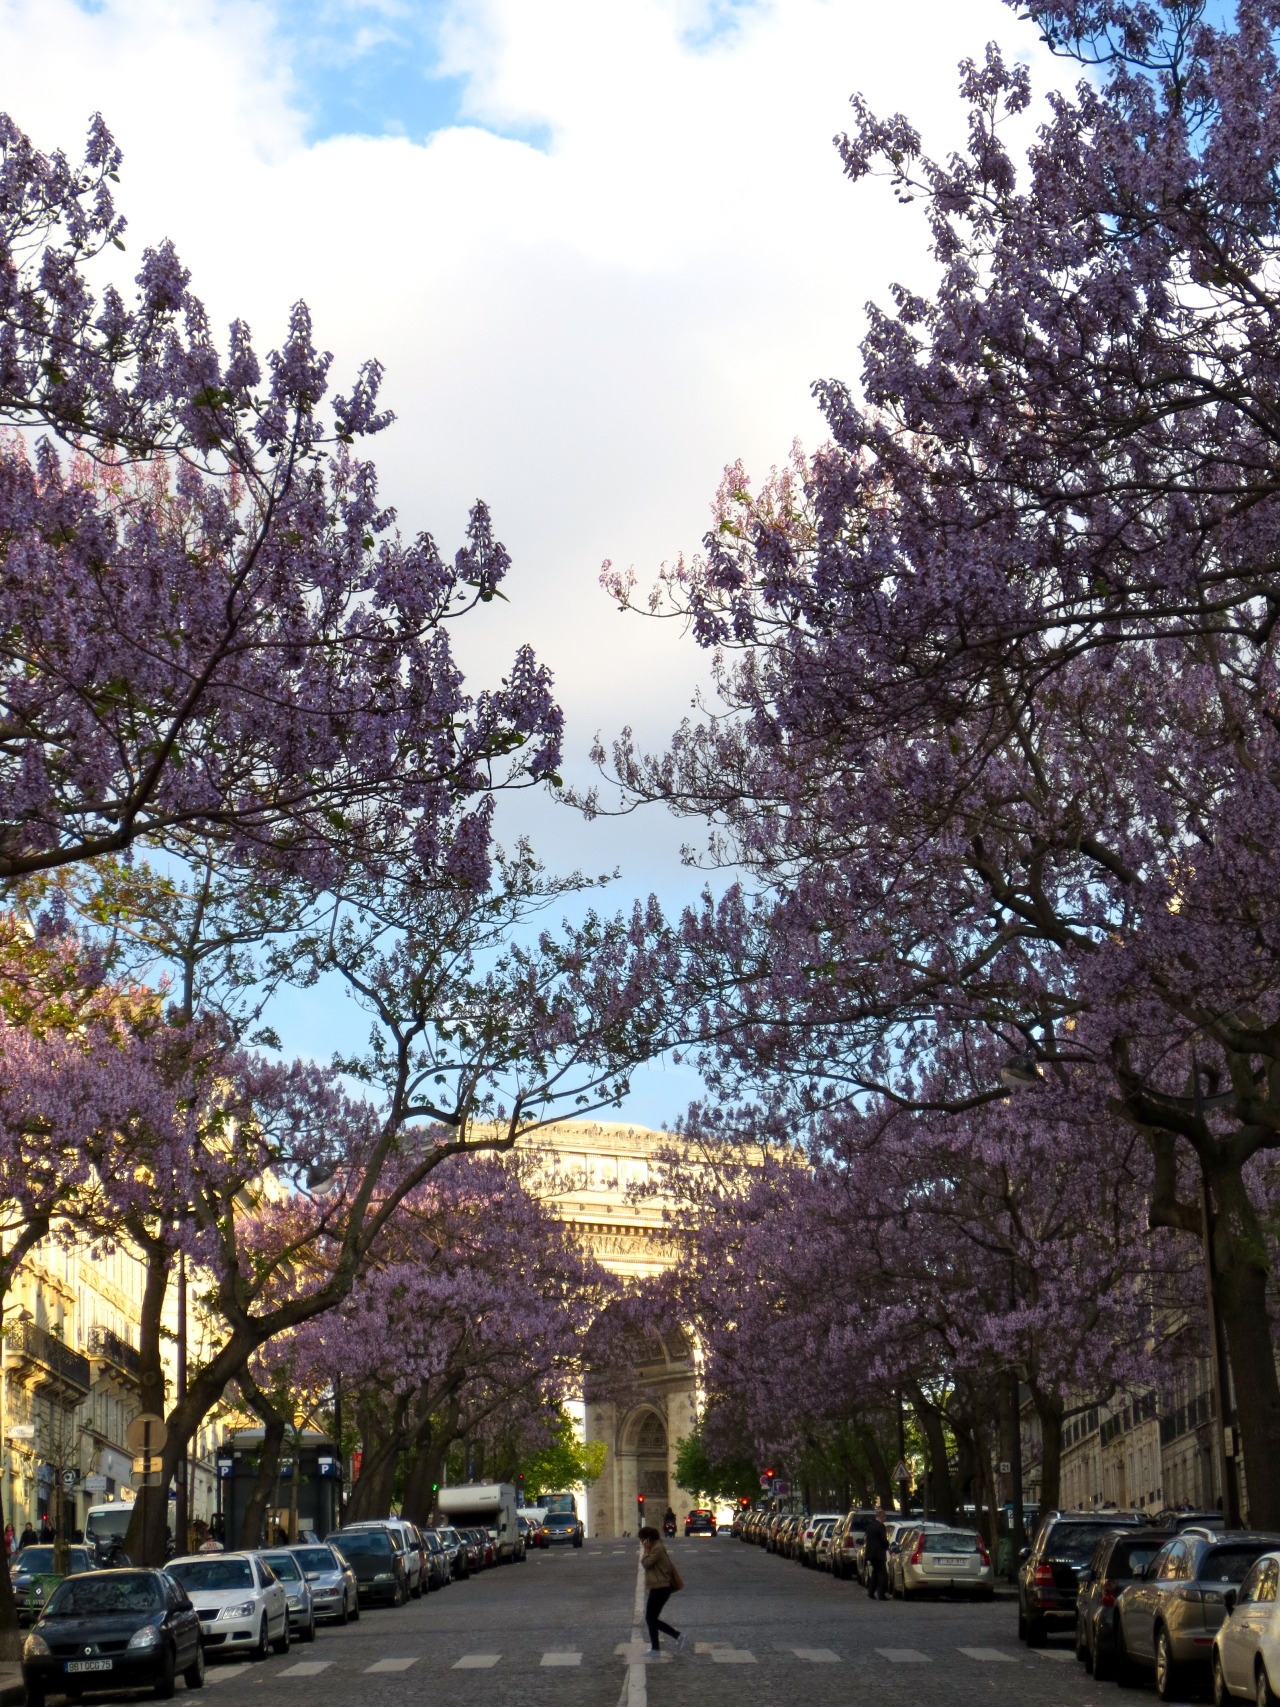 newsweek-paris-france:  The weather's still chilly, but the trees finally quit waiting for spring: Avenue Carnot on Friday afternoon in Paris, France.